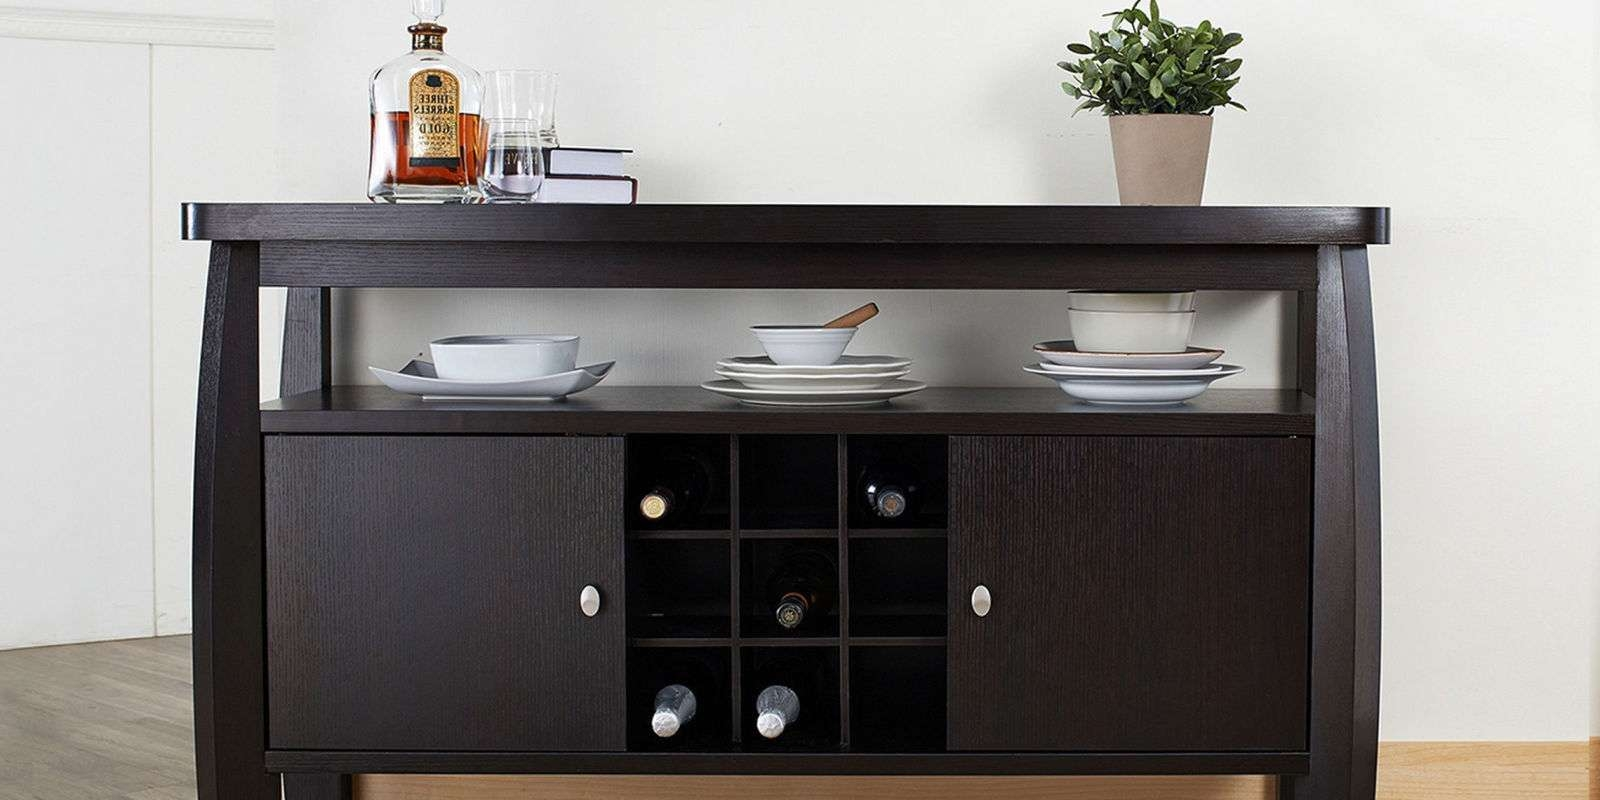 11 Best Sideboards And Buffets In 2018 – Reviews Of Sideboards Intended For Dining Room Sideboards And Buffets (View 1 of 20)